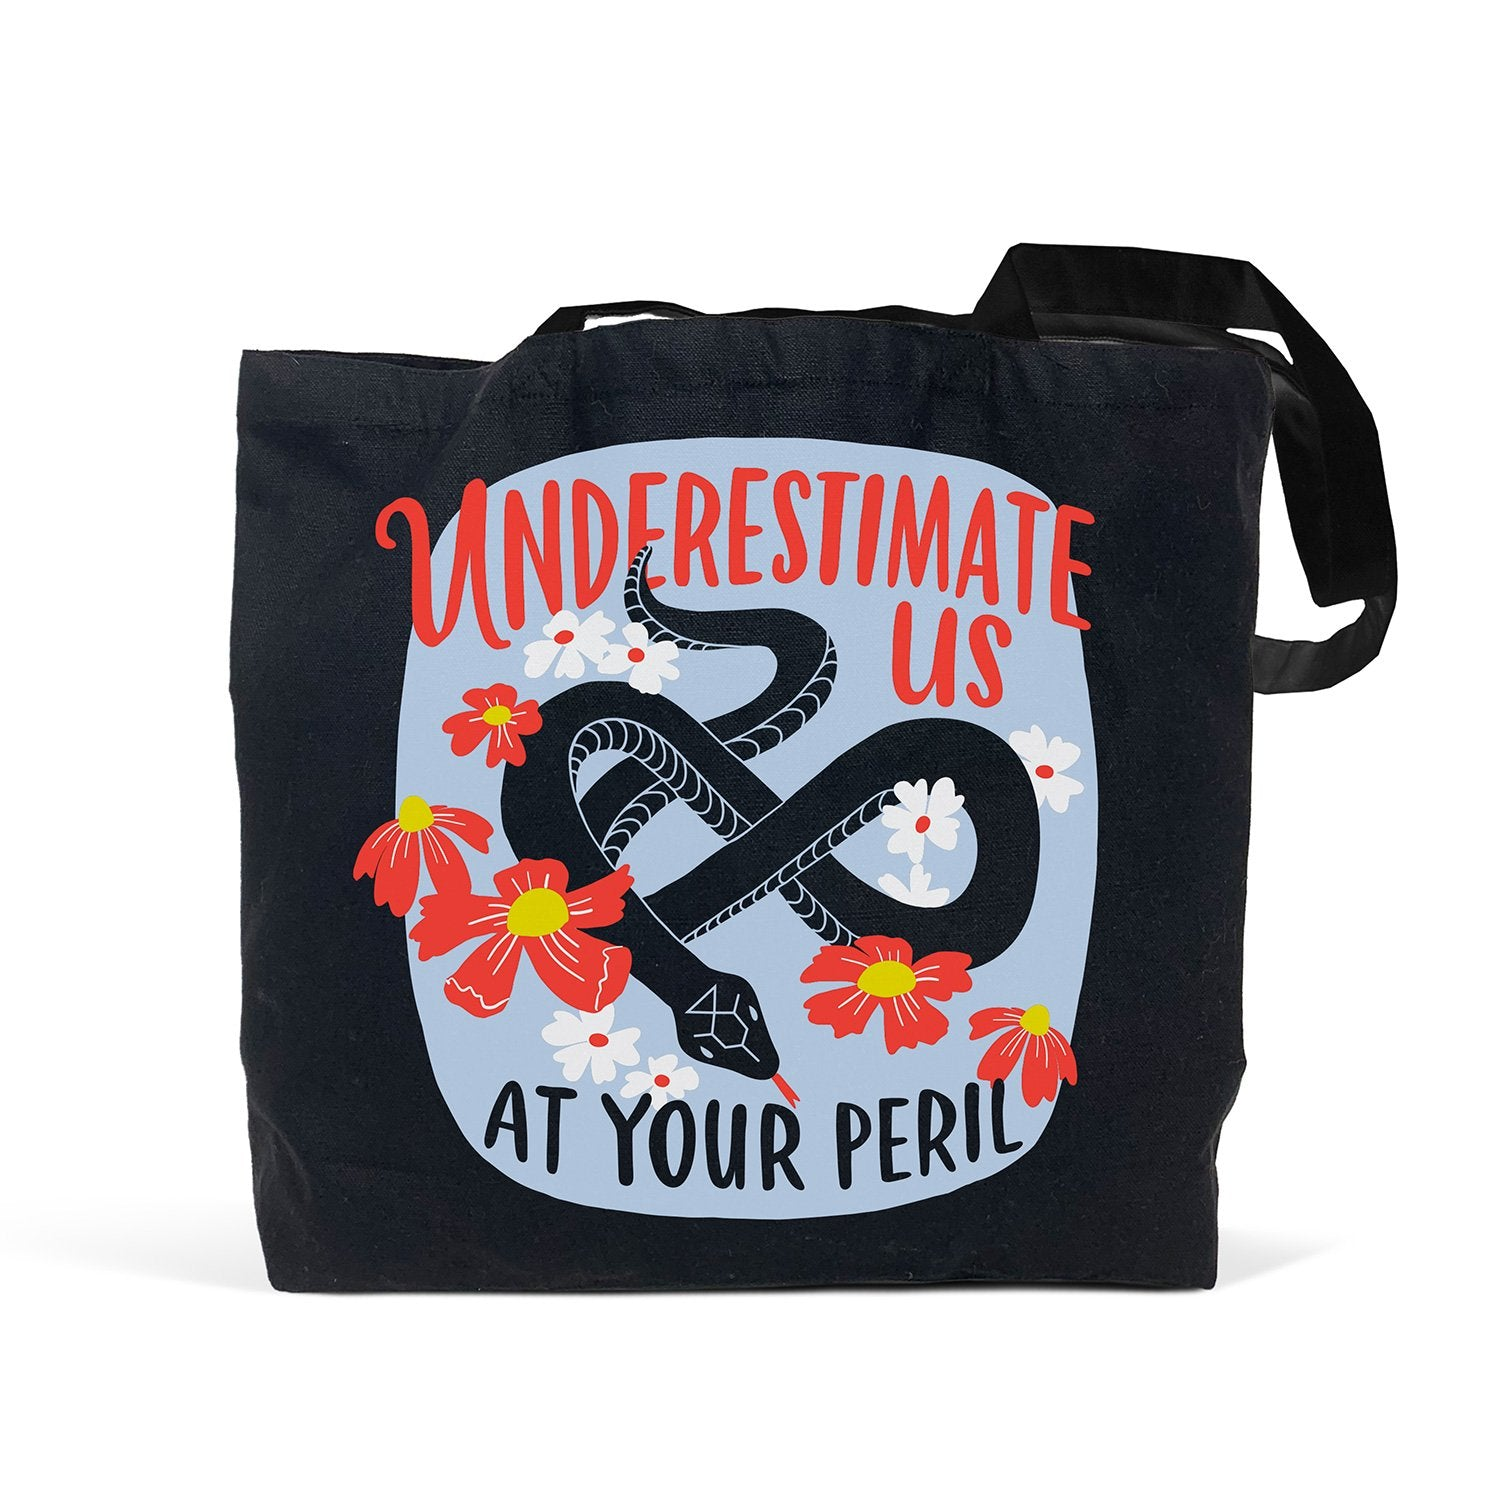 Underestimate Us Tote Bag - Let's Talk Coaching